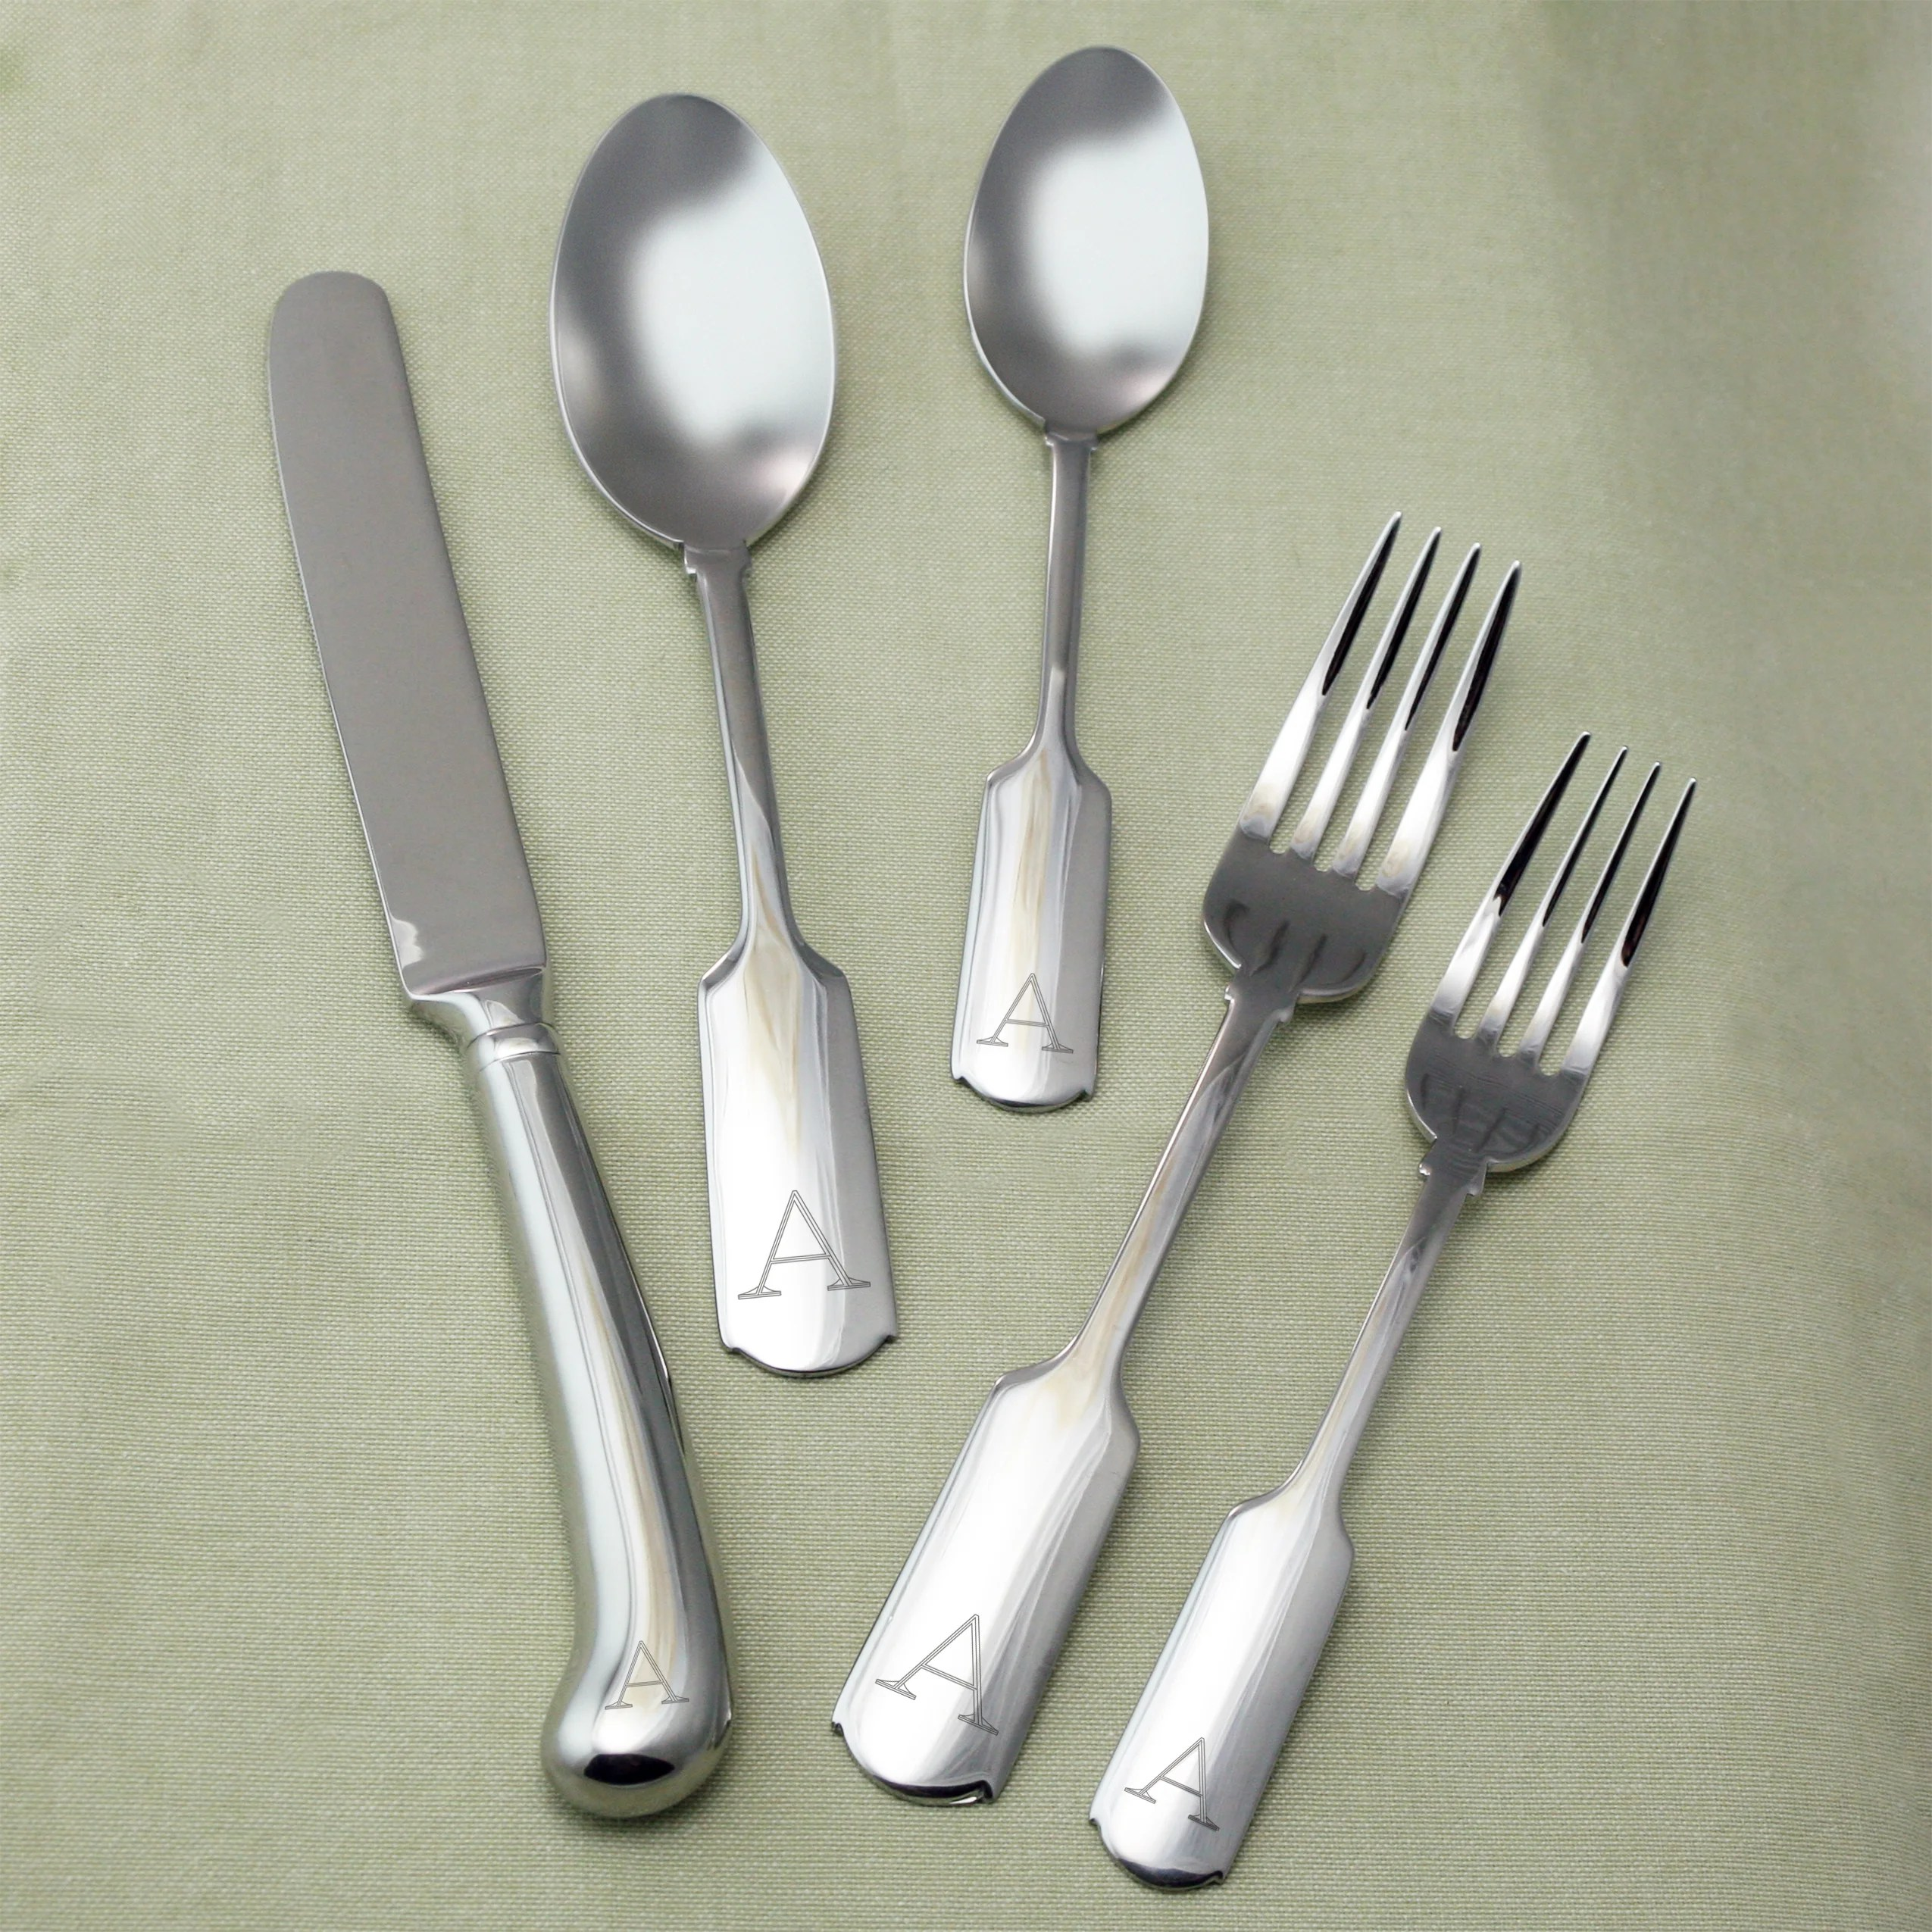 Best Deal On Silverware Fenmore Personalized 45 Piece Stainless Steel Flatware Set